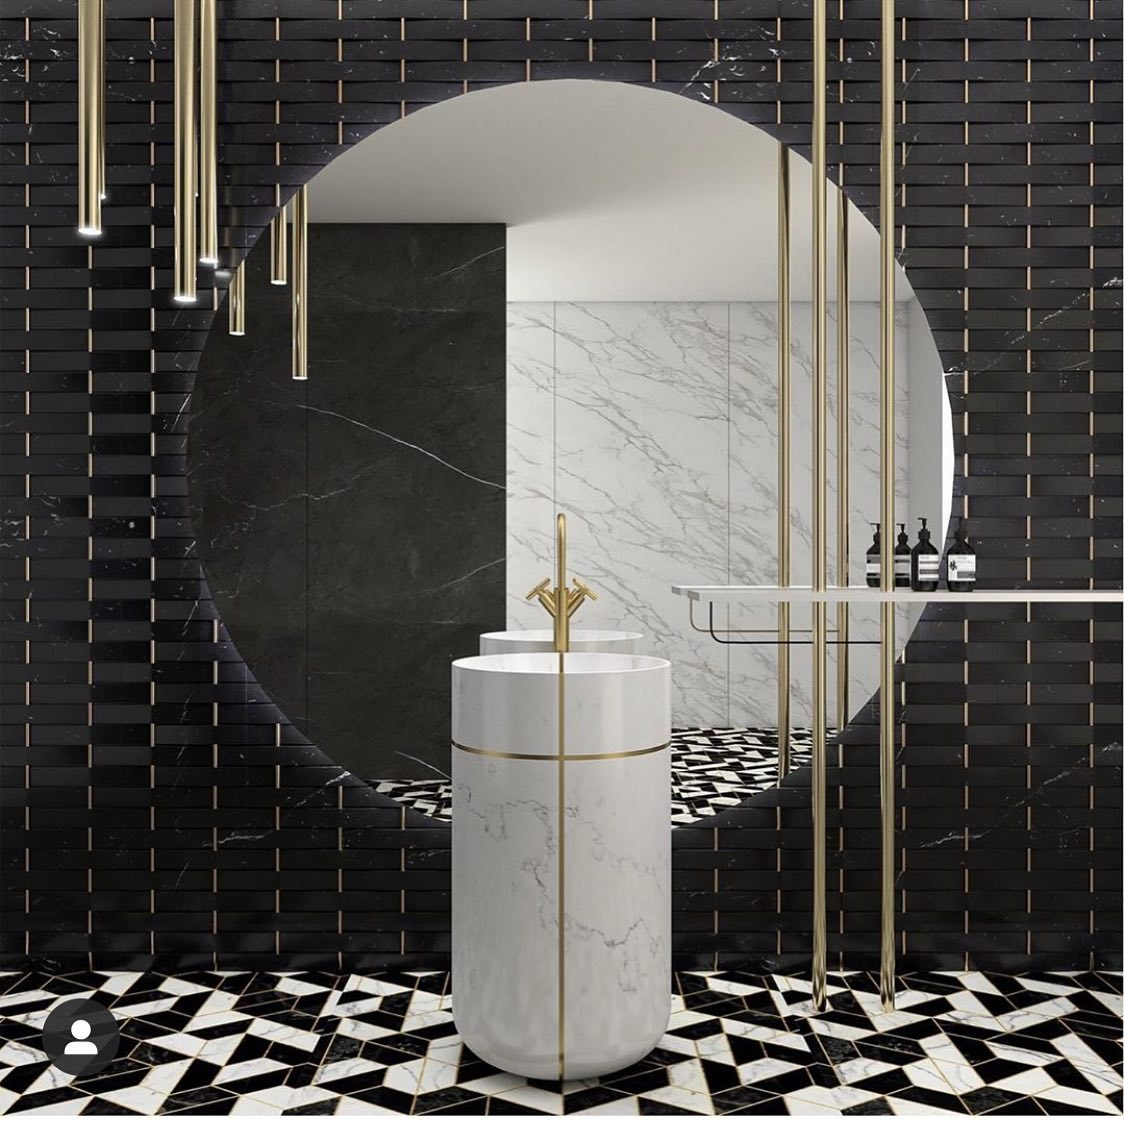 Get To Know The Top 5 Interior Designers From Casablanca casablanca Get To Know The Top 10 Interior Designers From Casablanca 80290604 2763308343759989 3240375227934310400 o